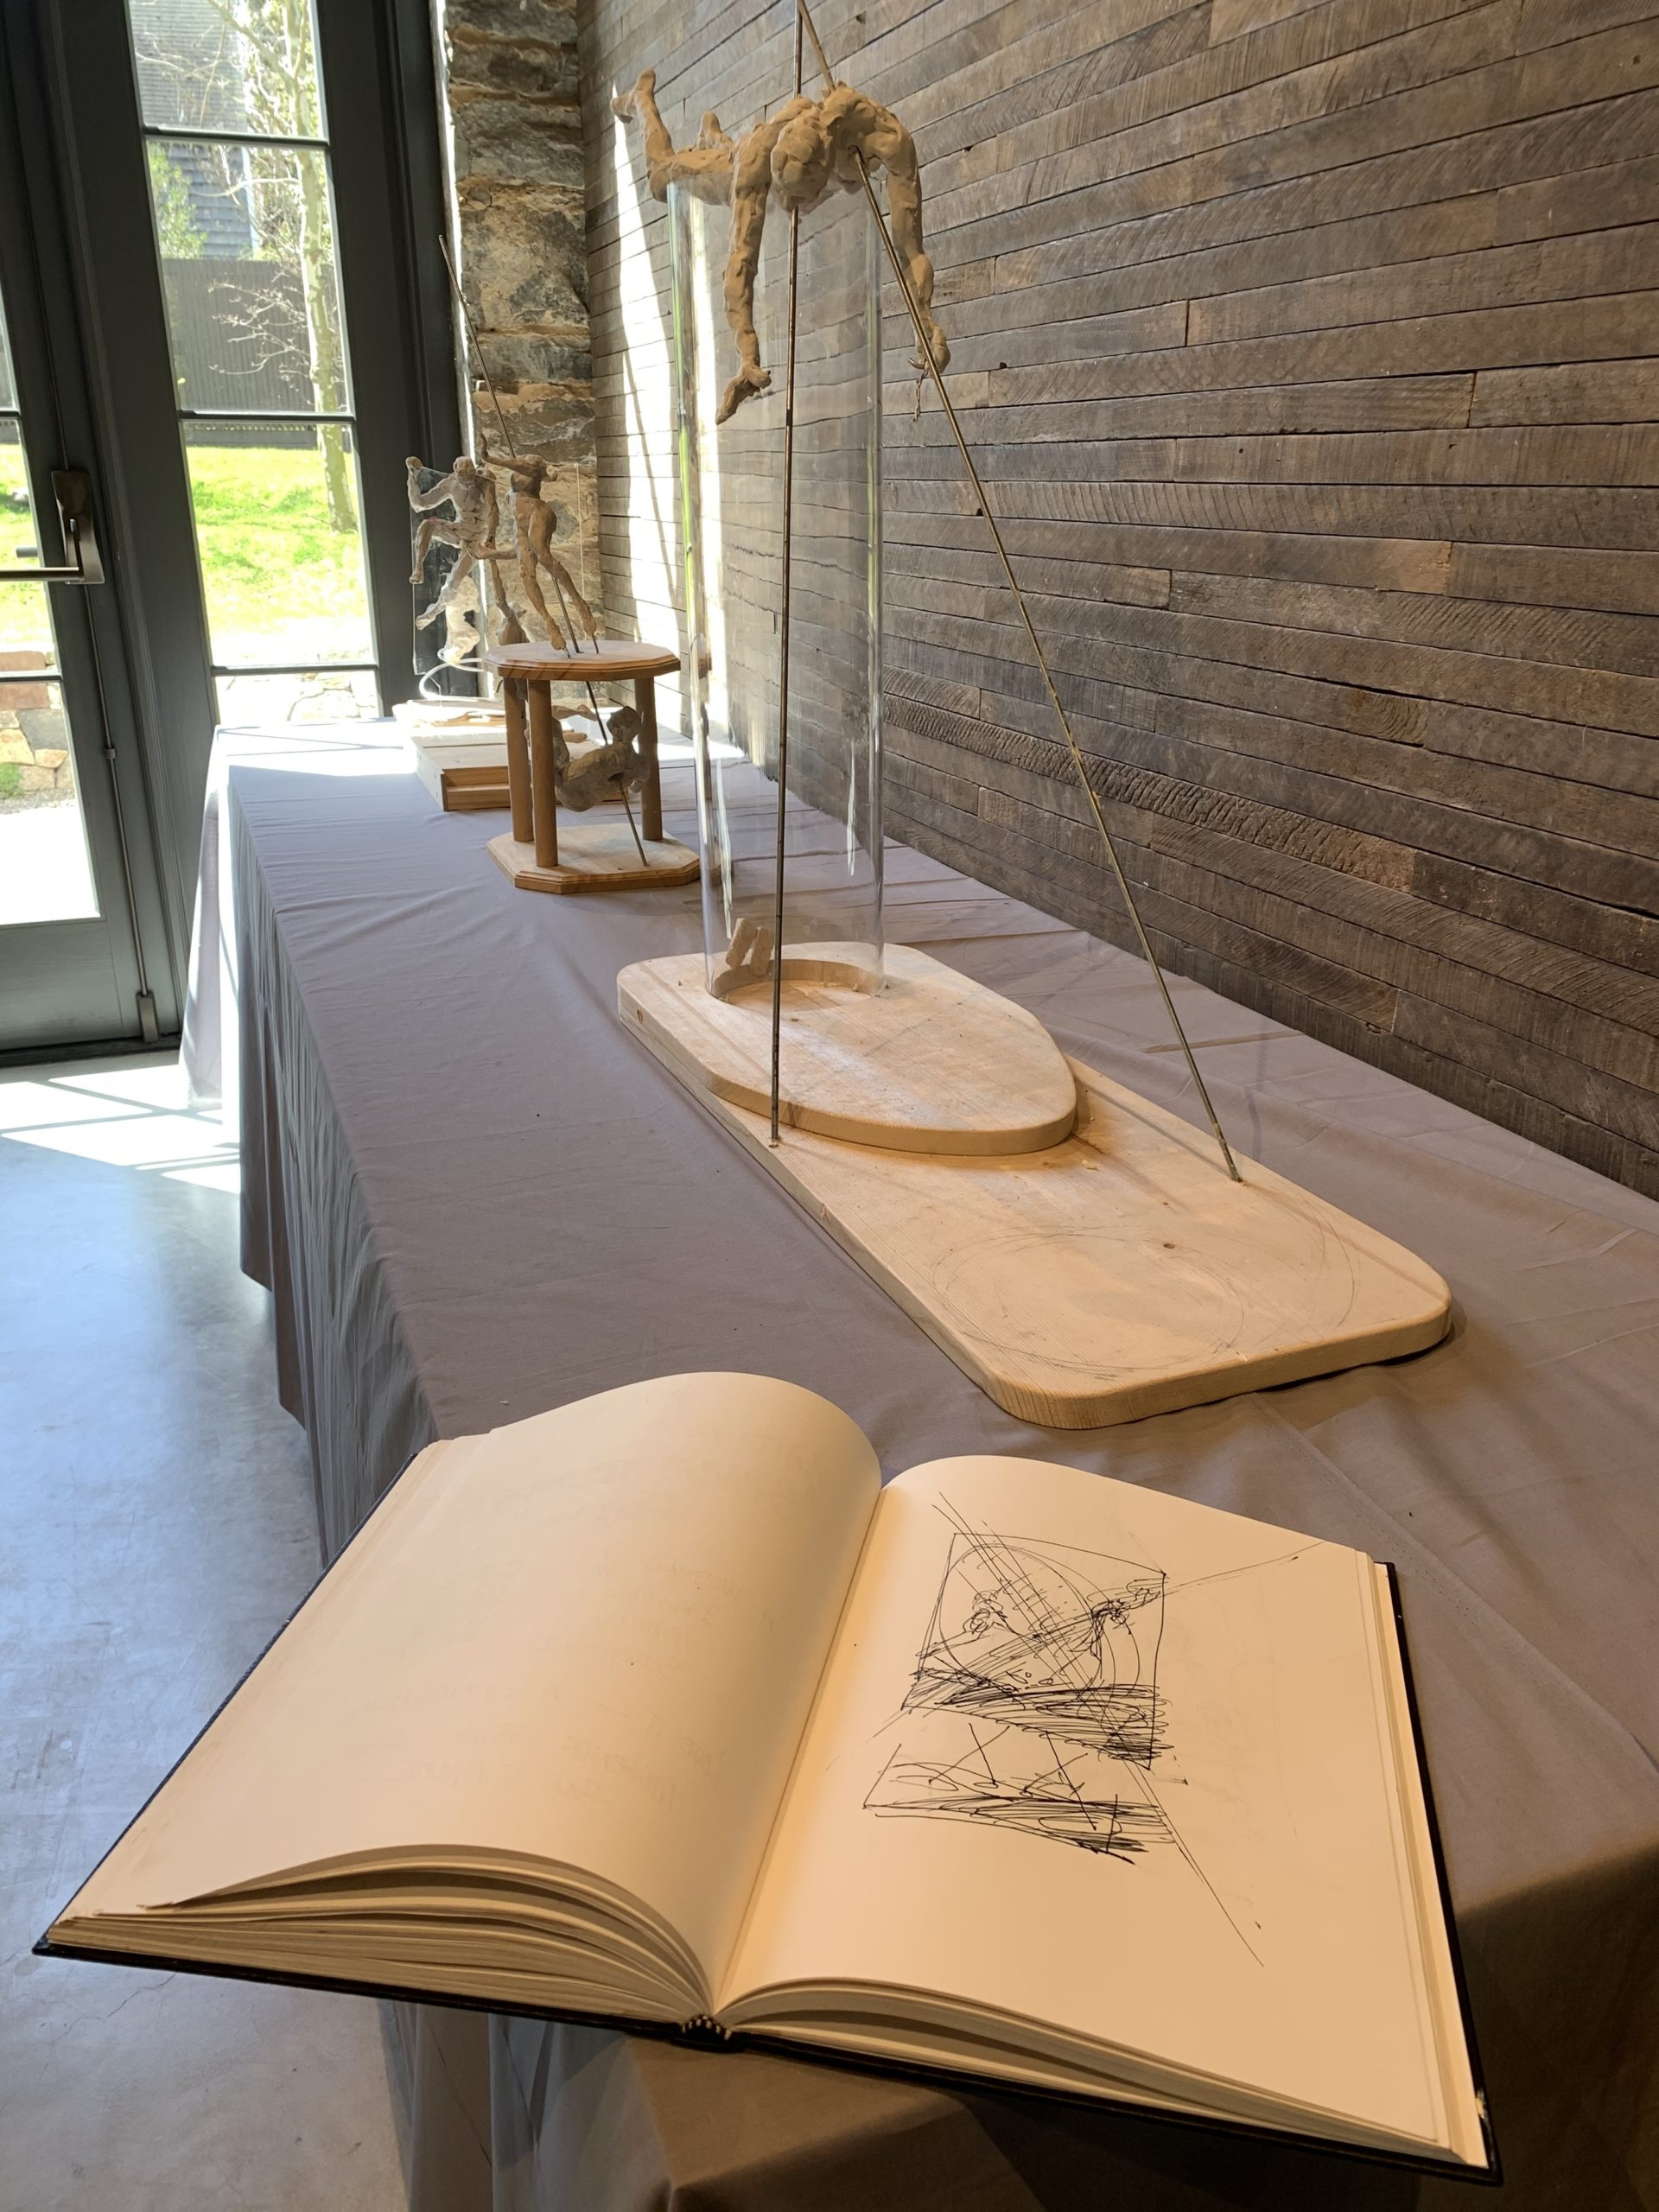 Jim Gingerich's sketchbook and a sculpture.